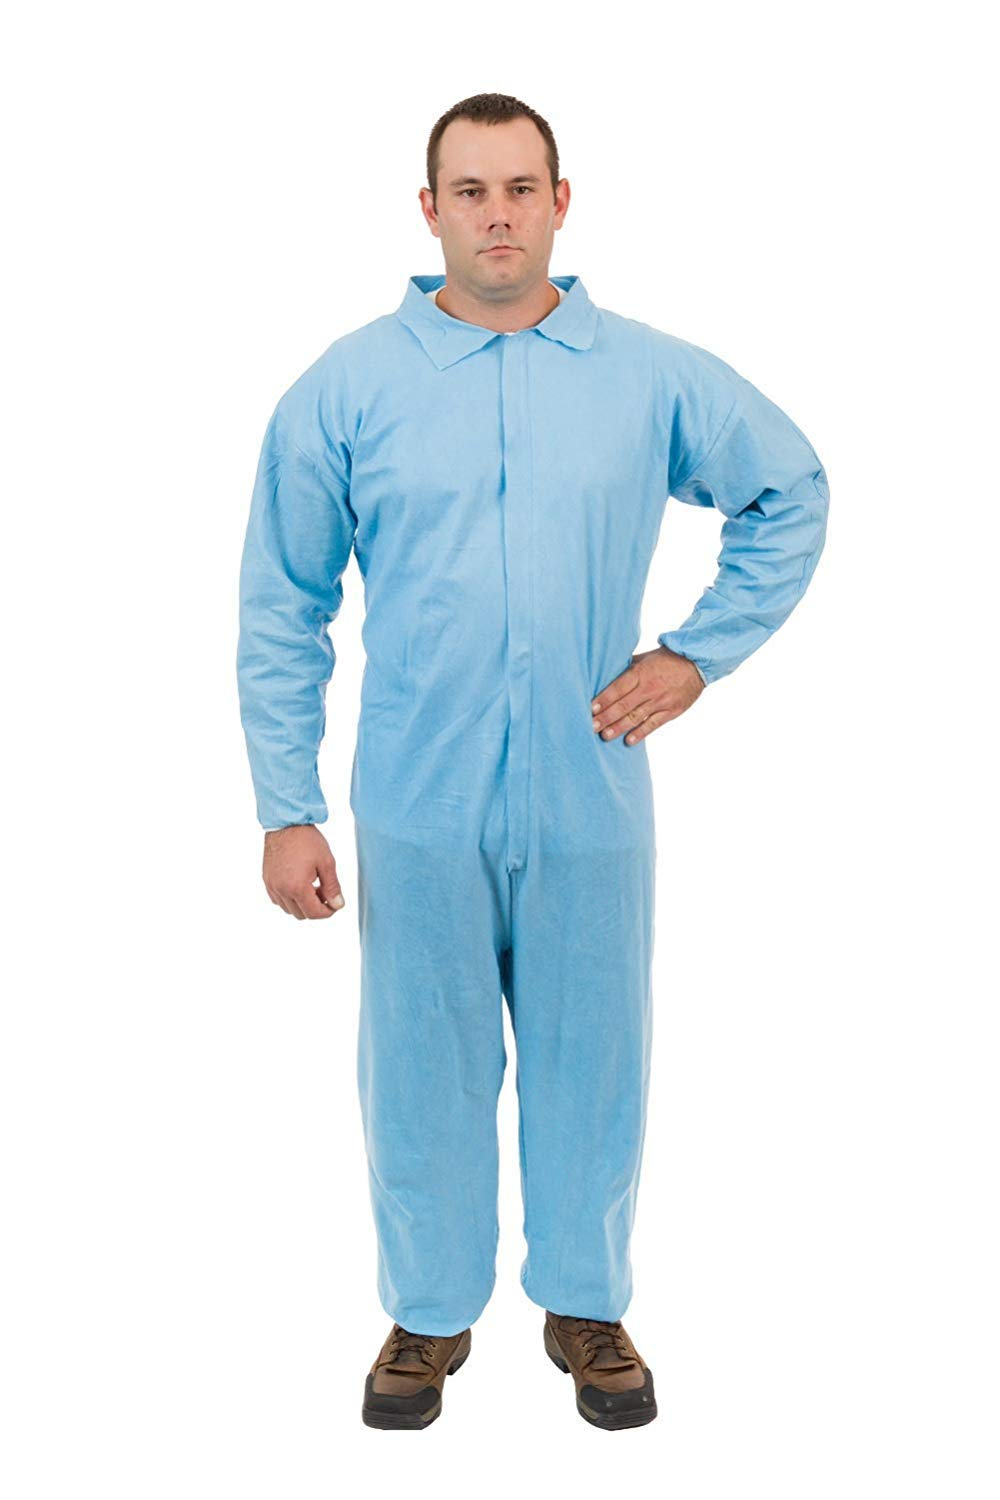 PyroGuard FR Disposable Flame Resistant Outerlayer Coveralls (Blue) (Case of 25) (5XL, Elastic Wrist, Open Ankle)